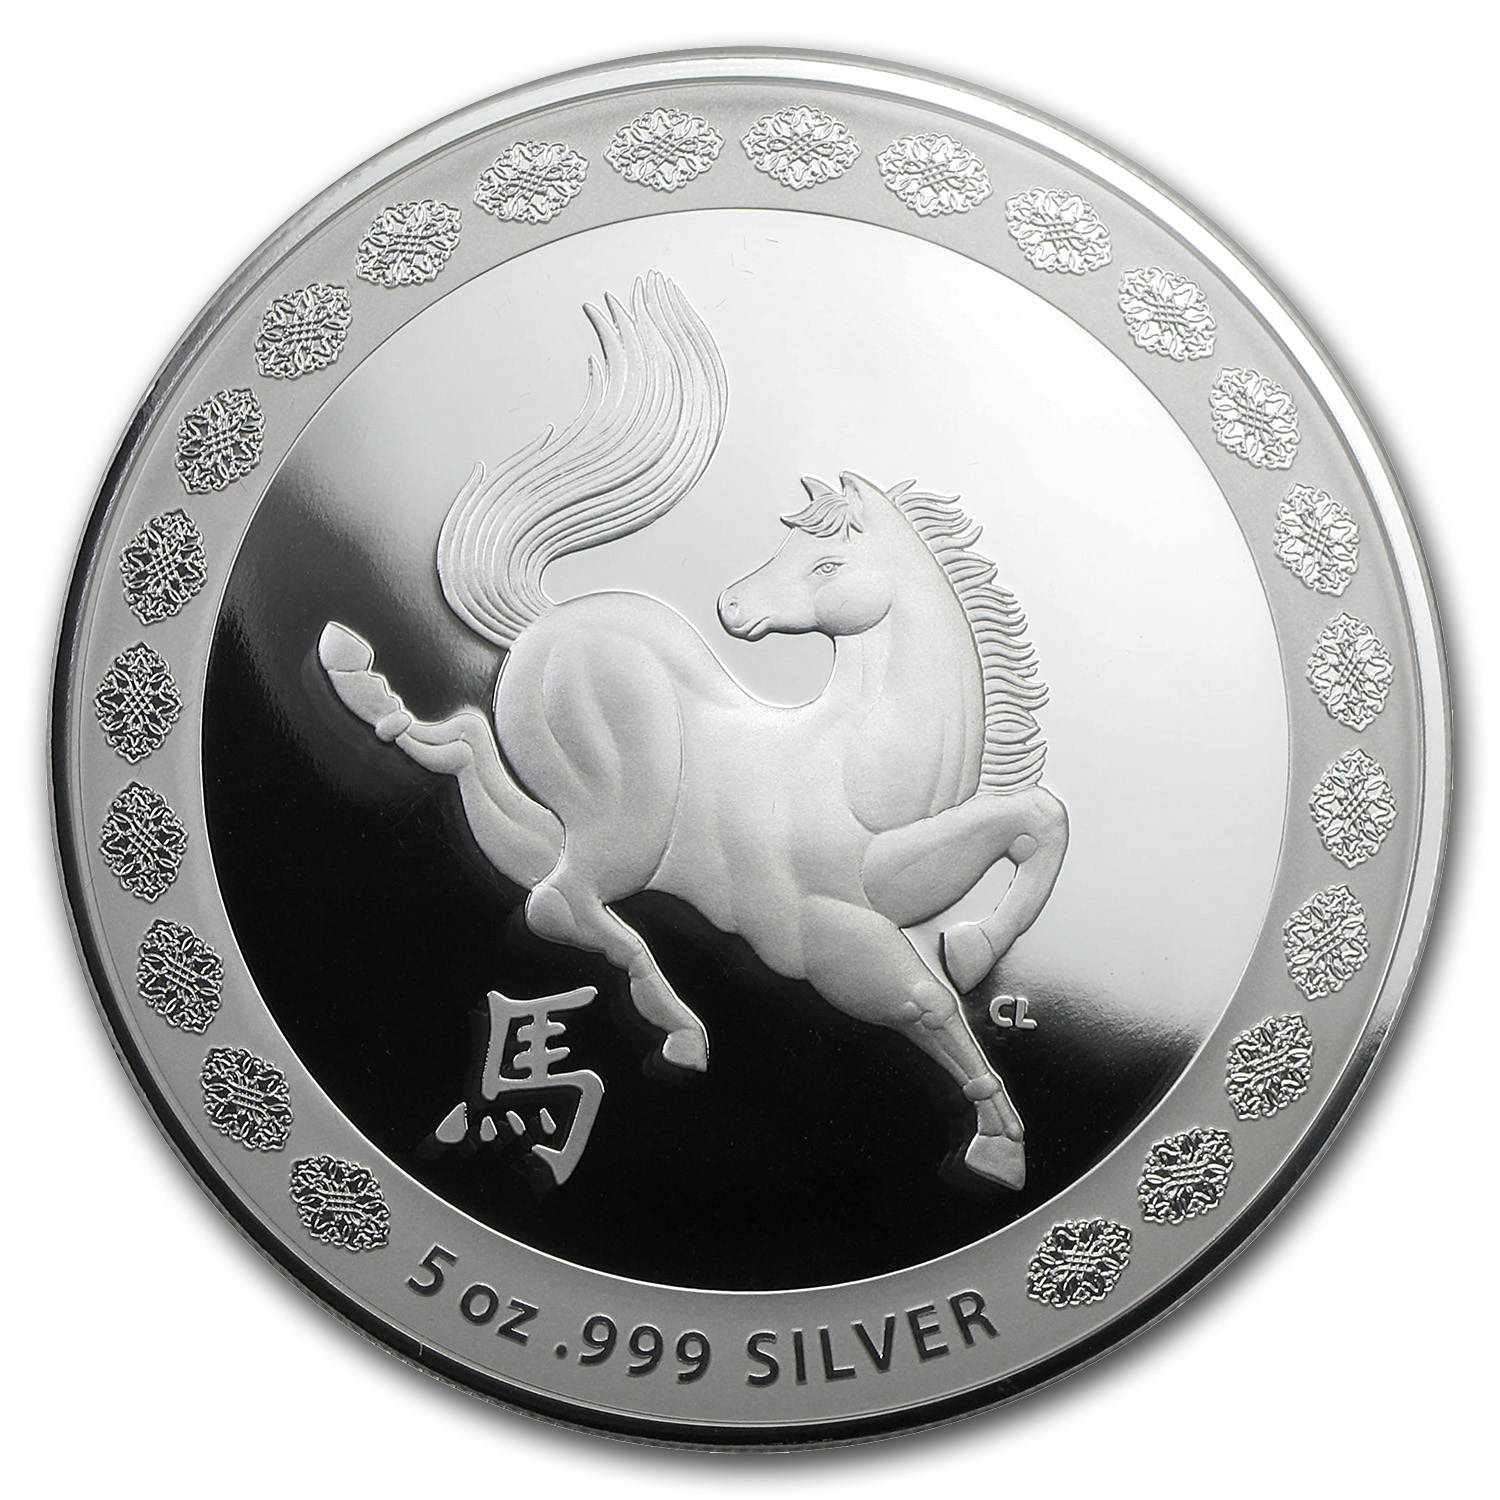 2014 Australia 5 oz Silver Year of the Horse Proof-Like